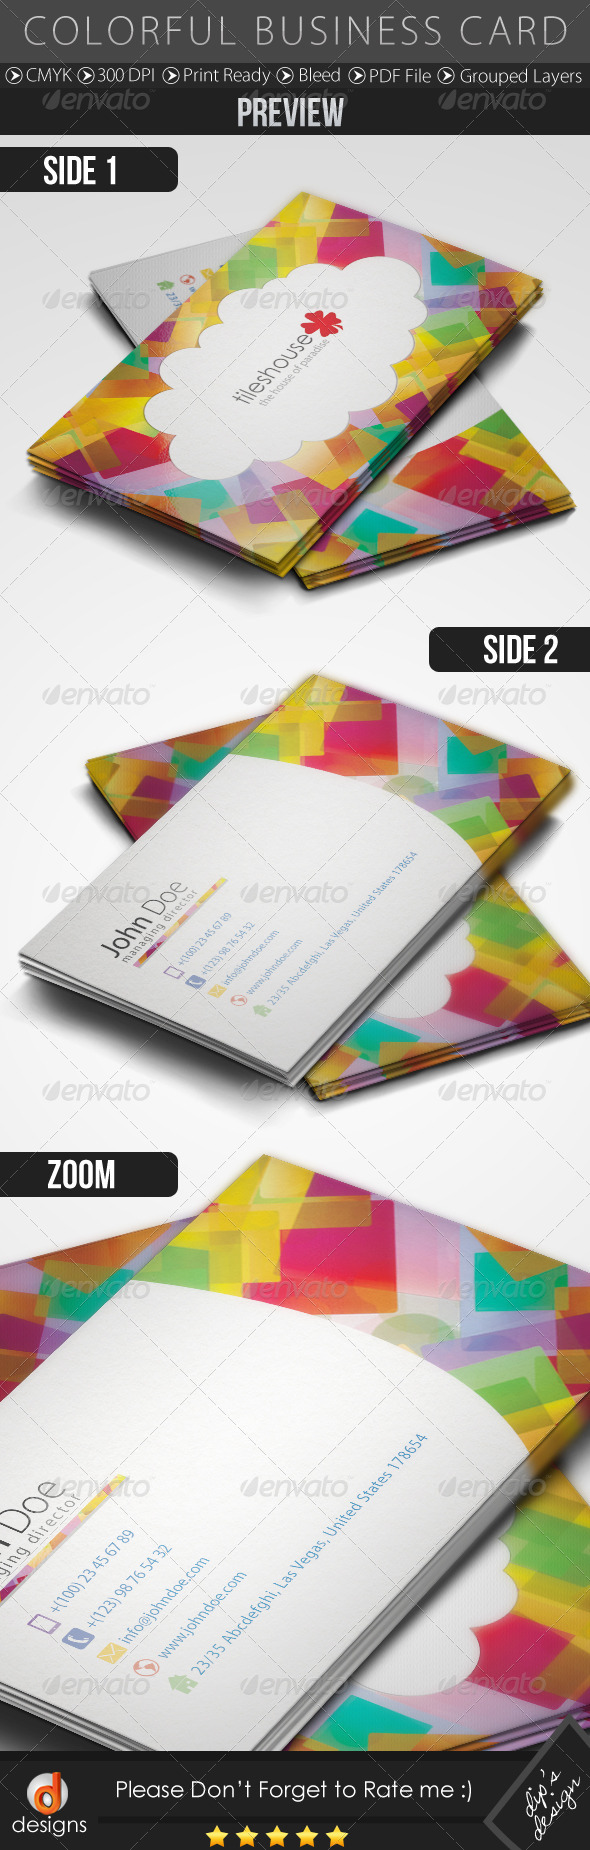 Colorful Business Card - Business Cards Print Templates